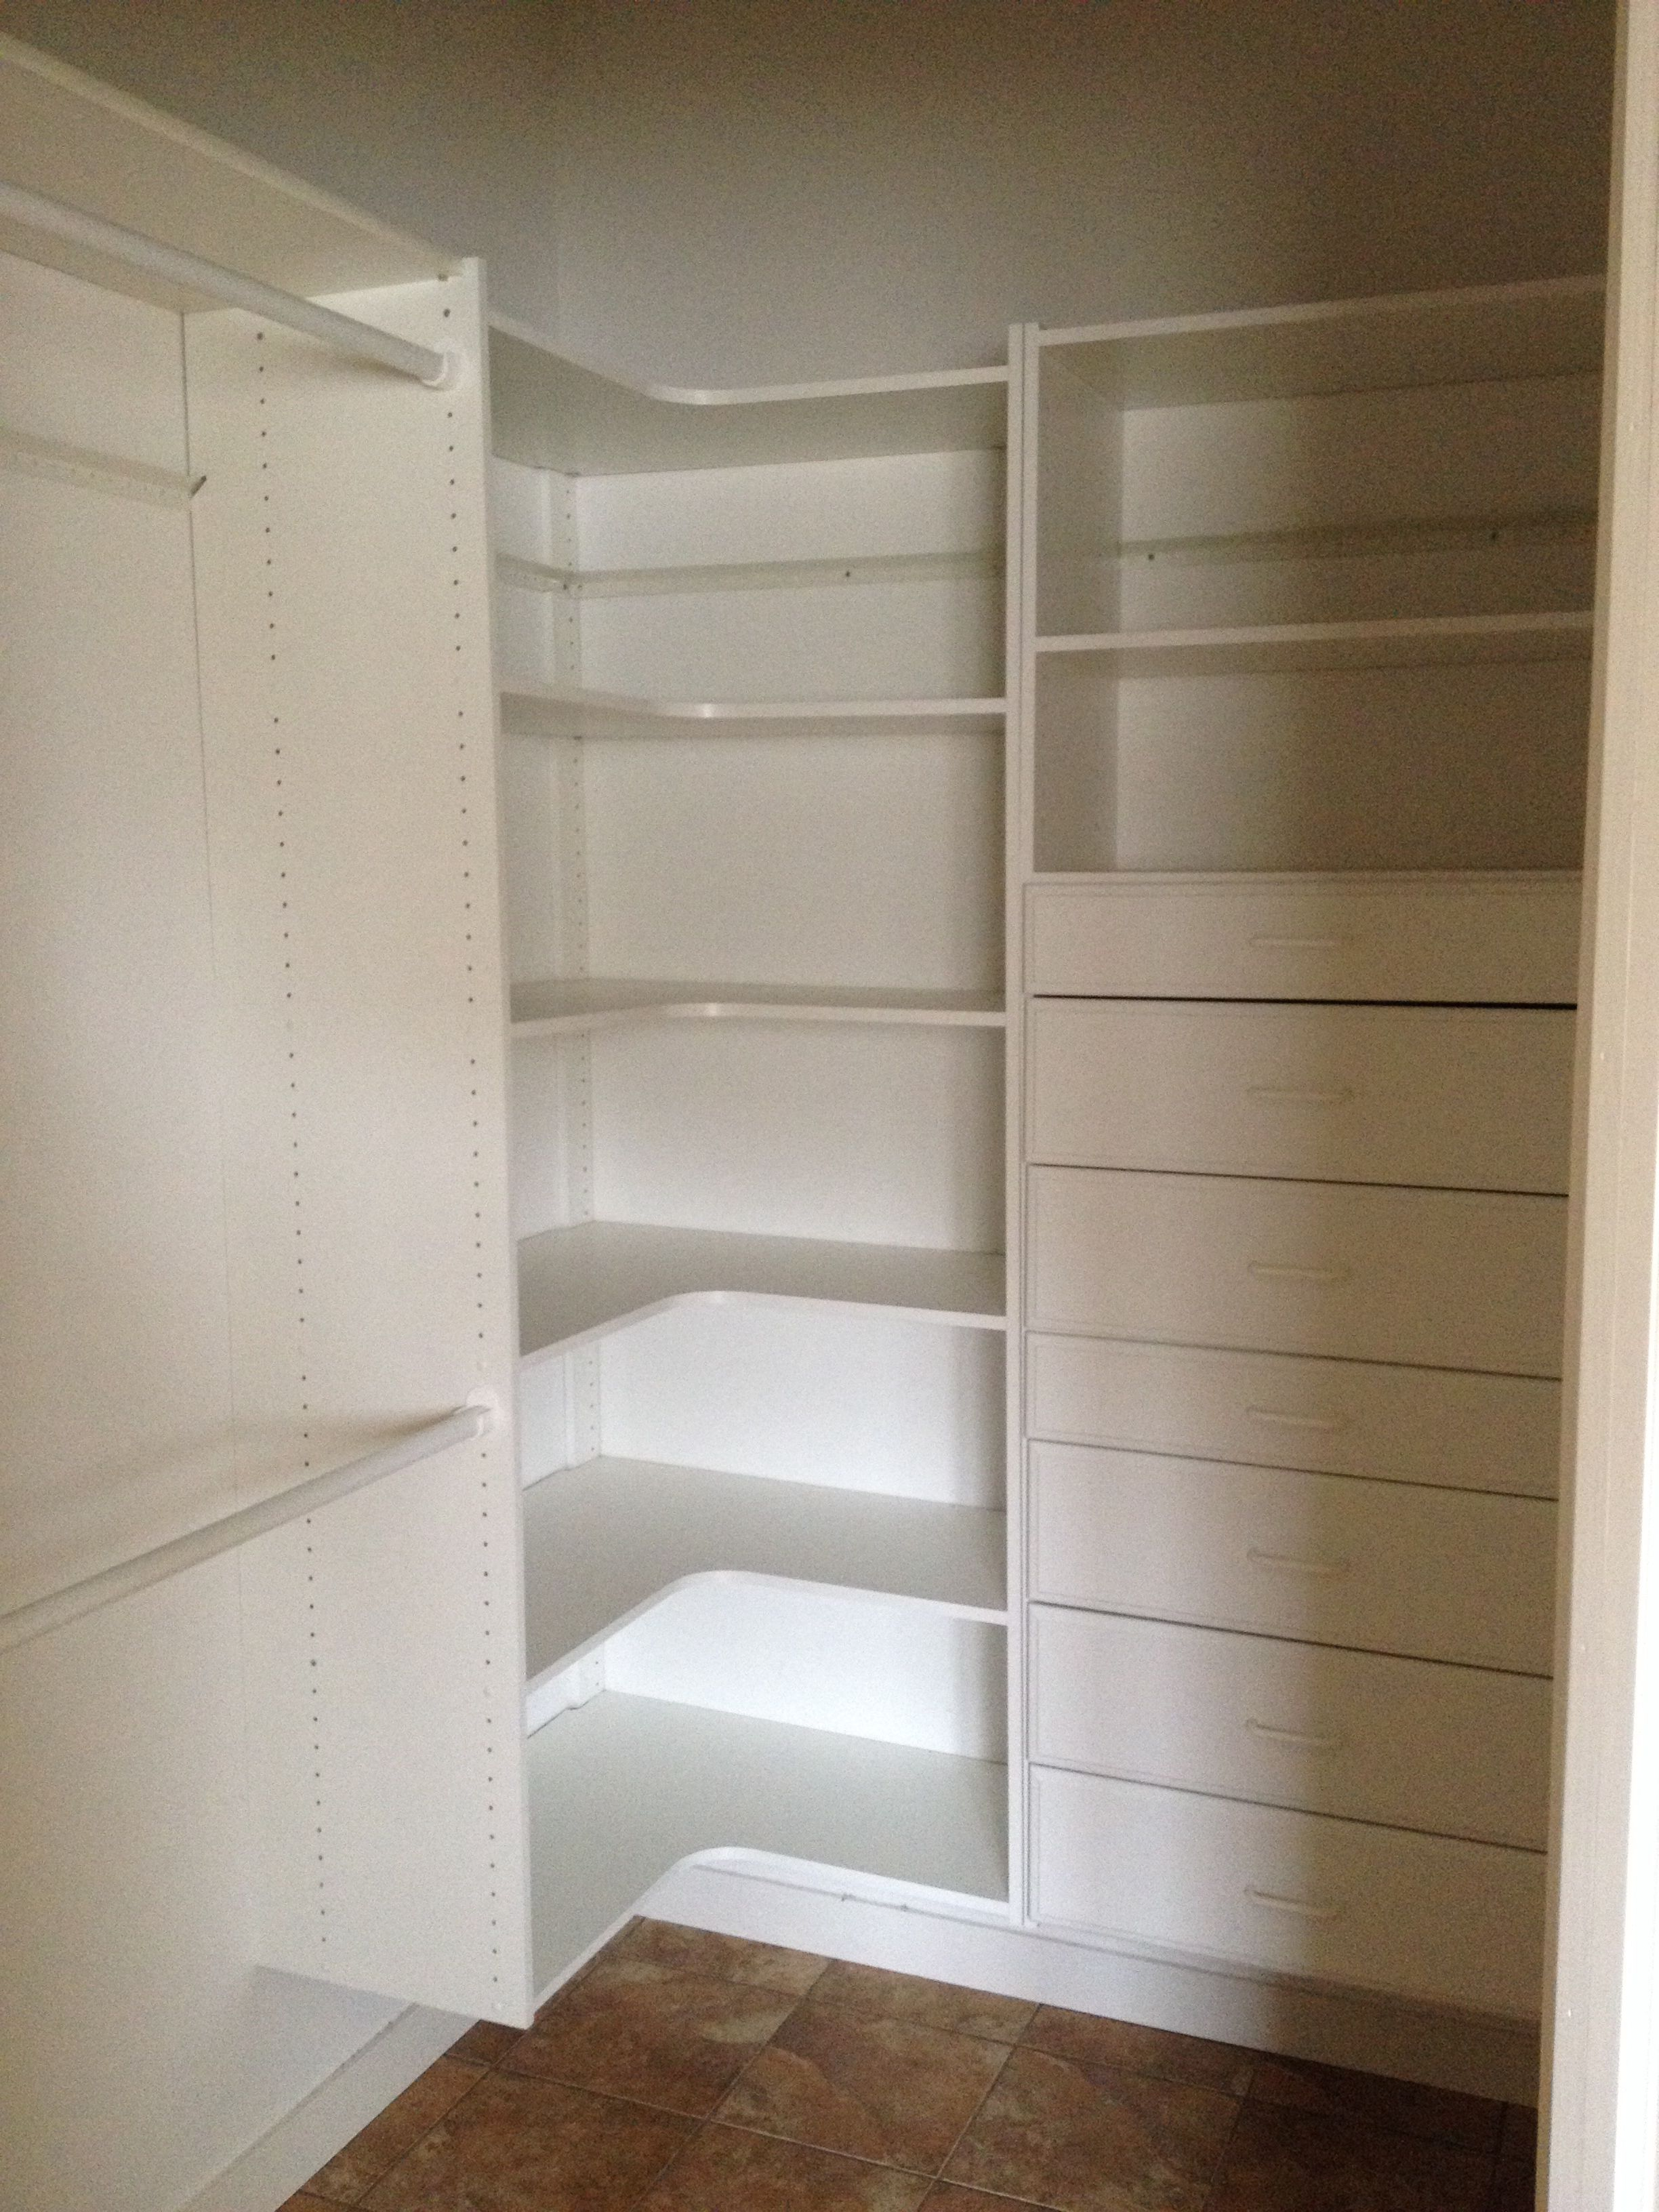 Master Bedroom Walk In Closet Idea For Maximum Storage And Space Use. I  Like The Corner Shelves